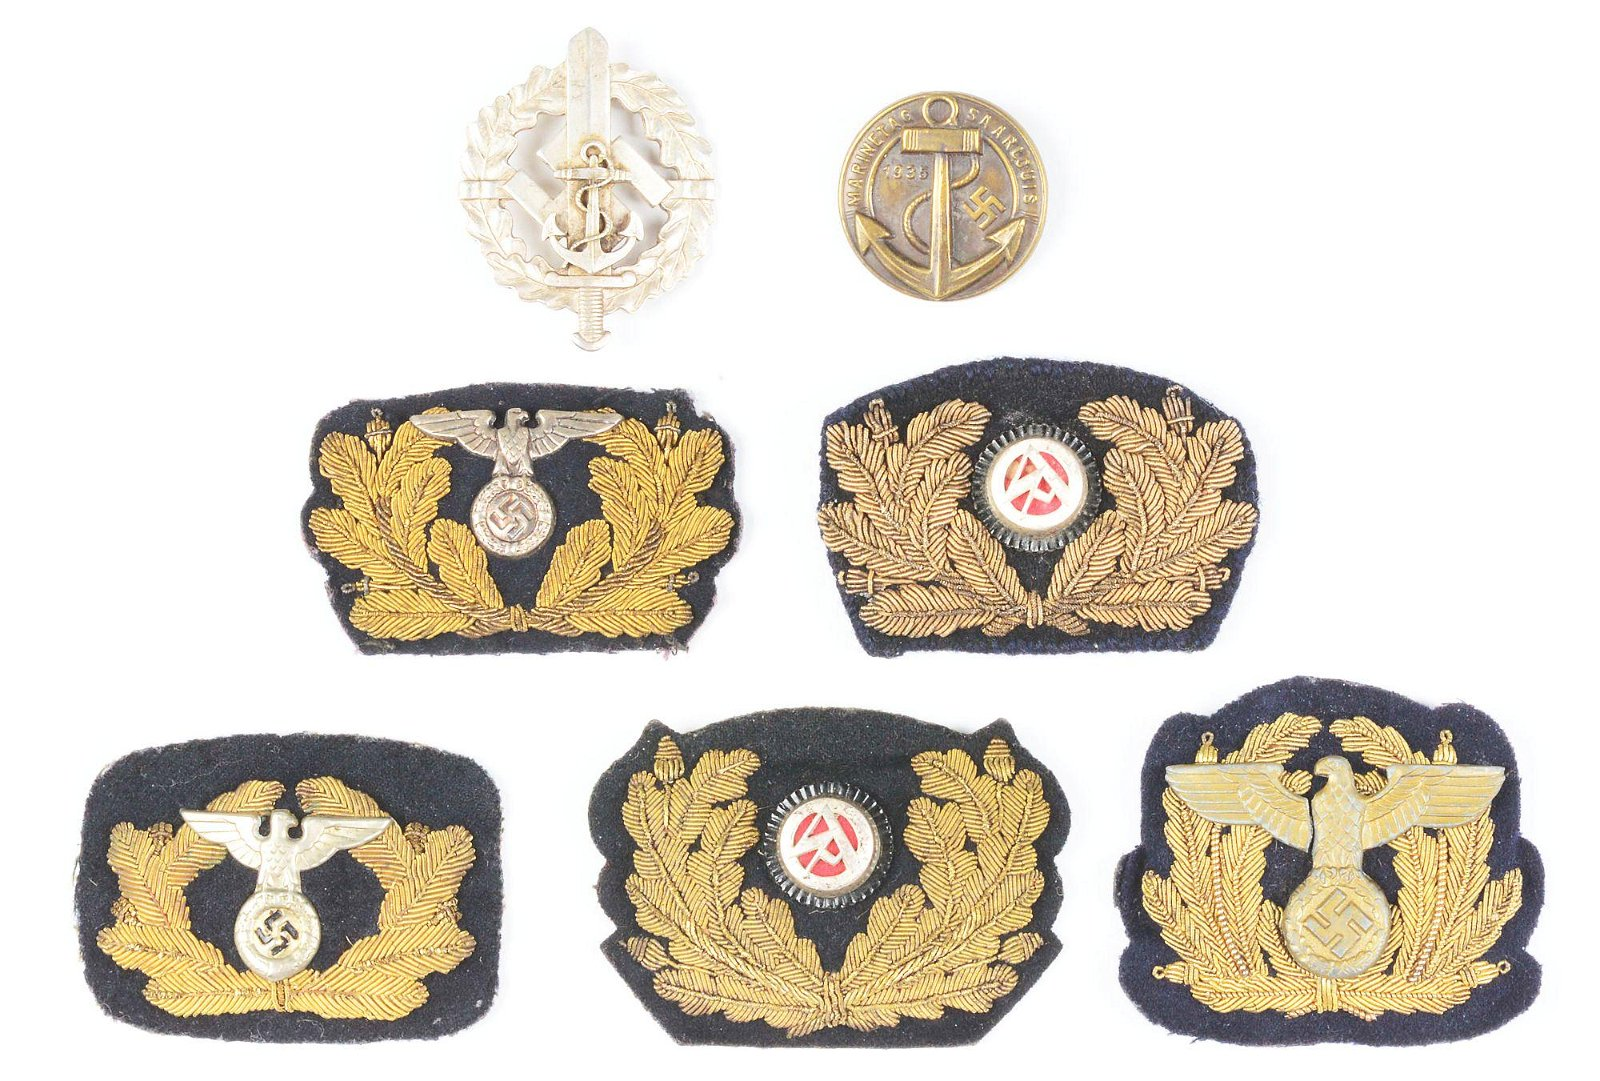 LOT OF 8: THIRD REICH SA MARINE, WATERWAYS PROTECTION